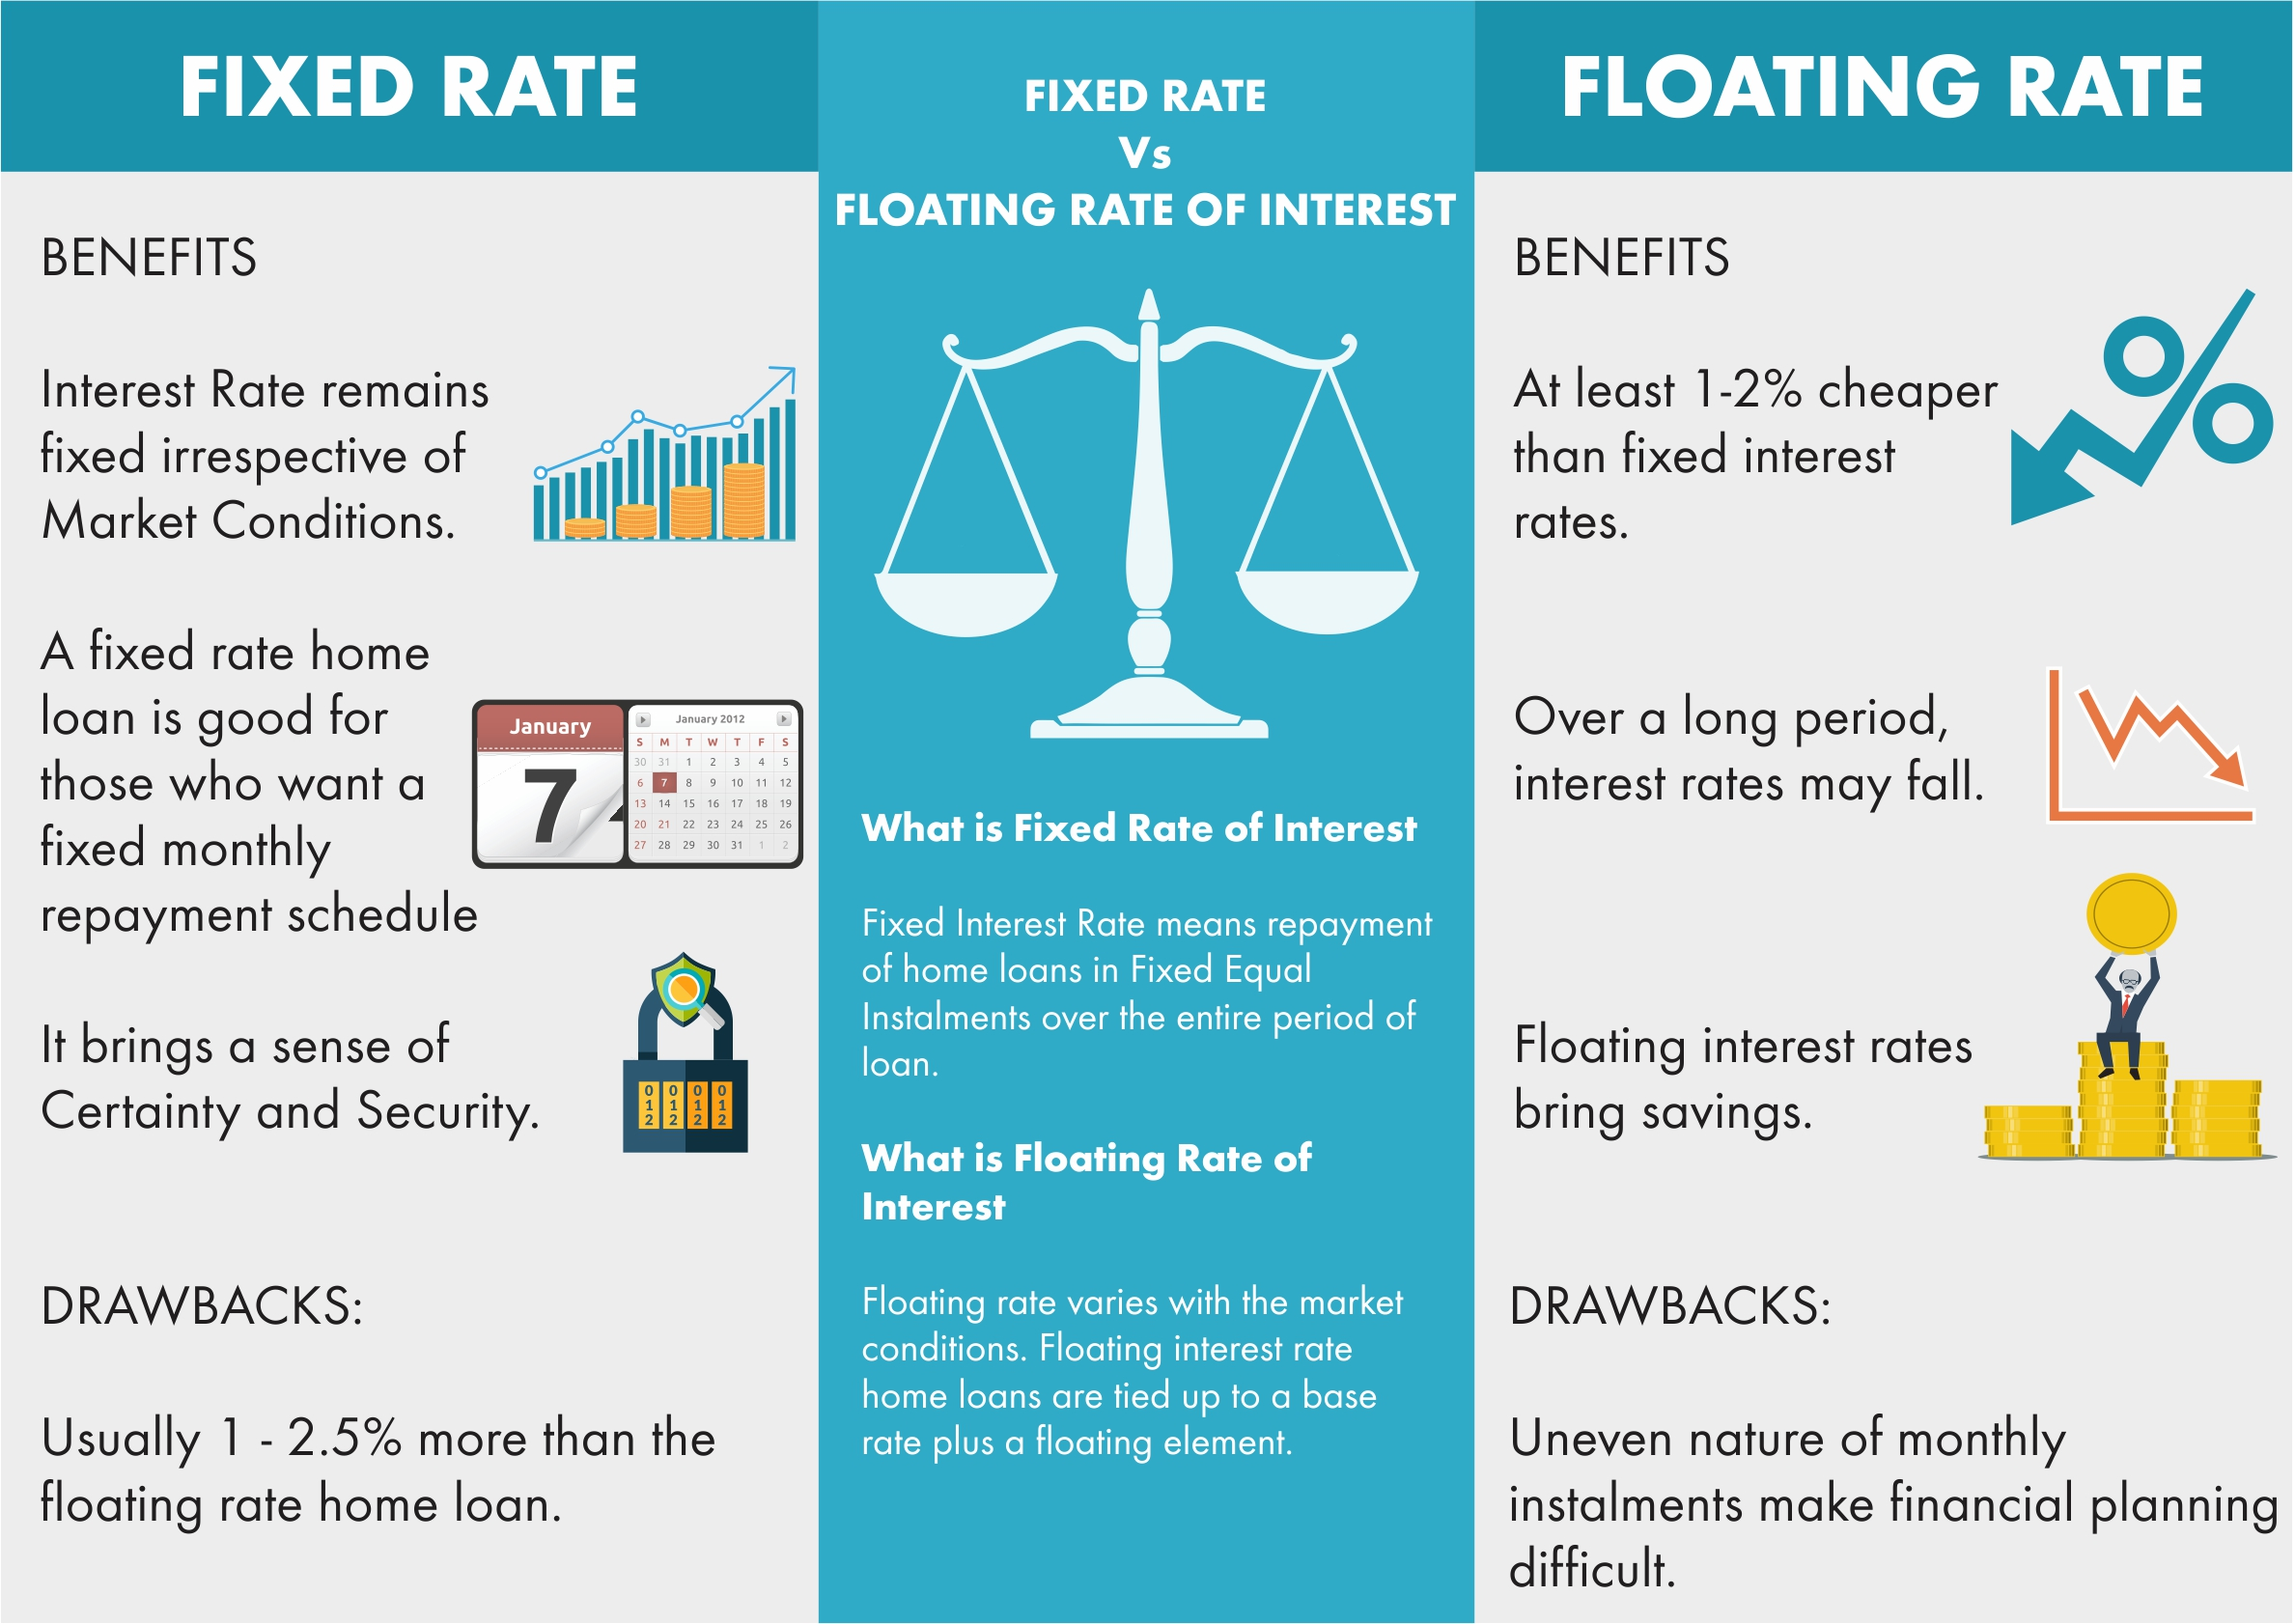 Fixed Rate Vs Floating Rate of Interest